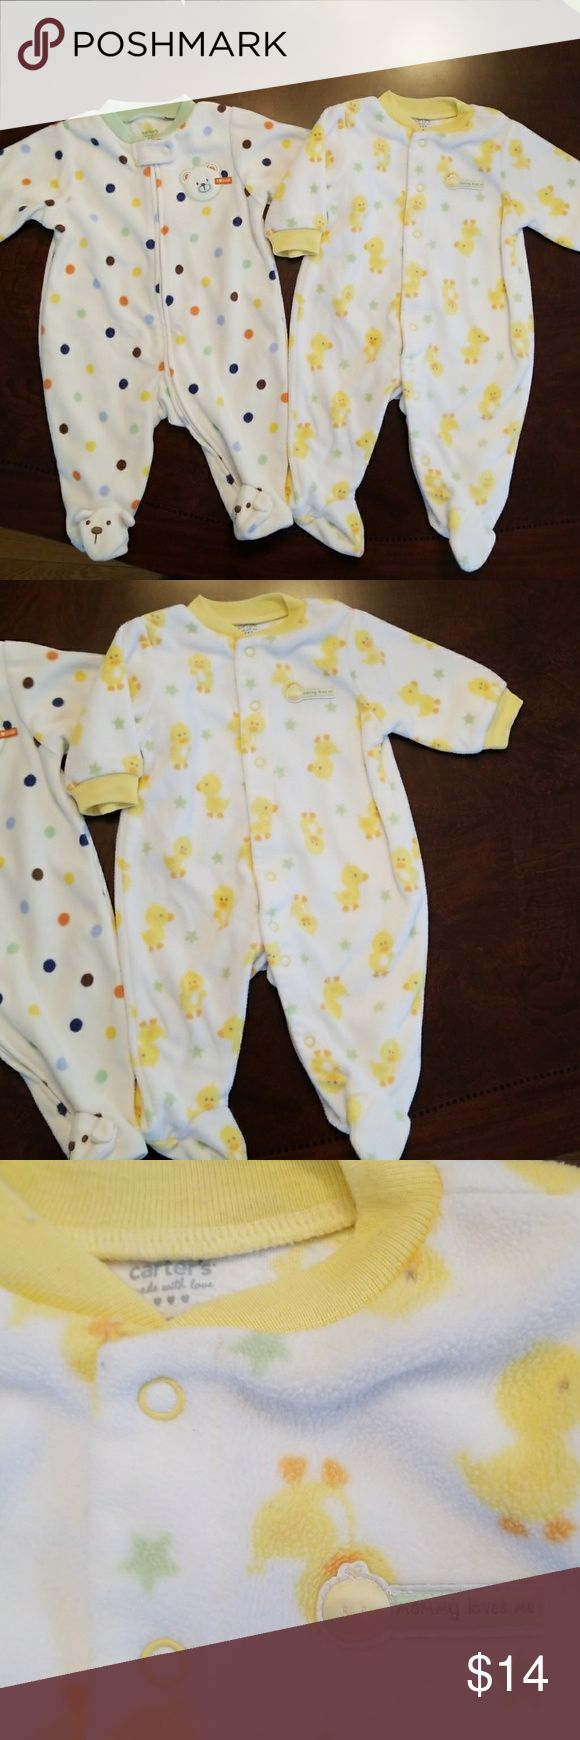 2 Carter's footed fleece pajamas 2 Carter's size 3 months footed fleece pajamas, white with ducks has snaps and the white with polka dots one has a full zip. Carter's One Pieces Footies